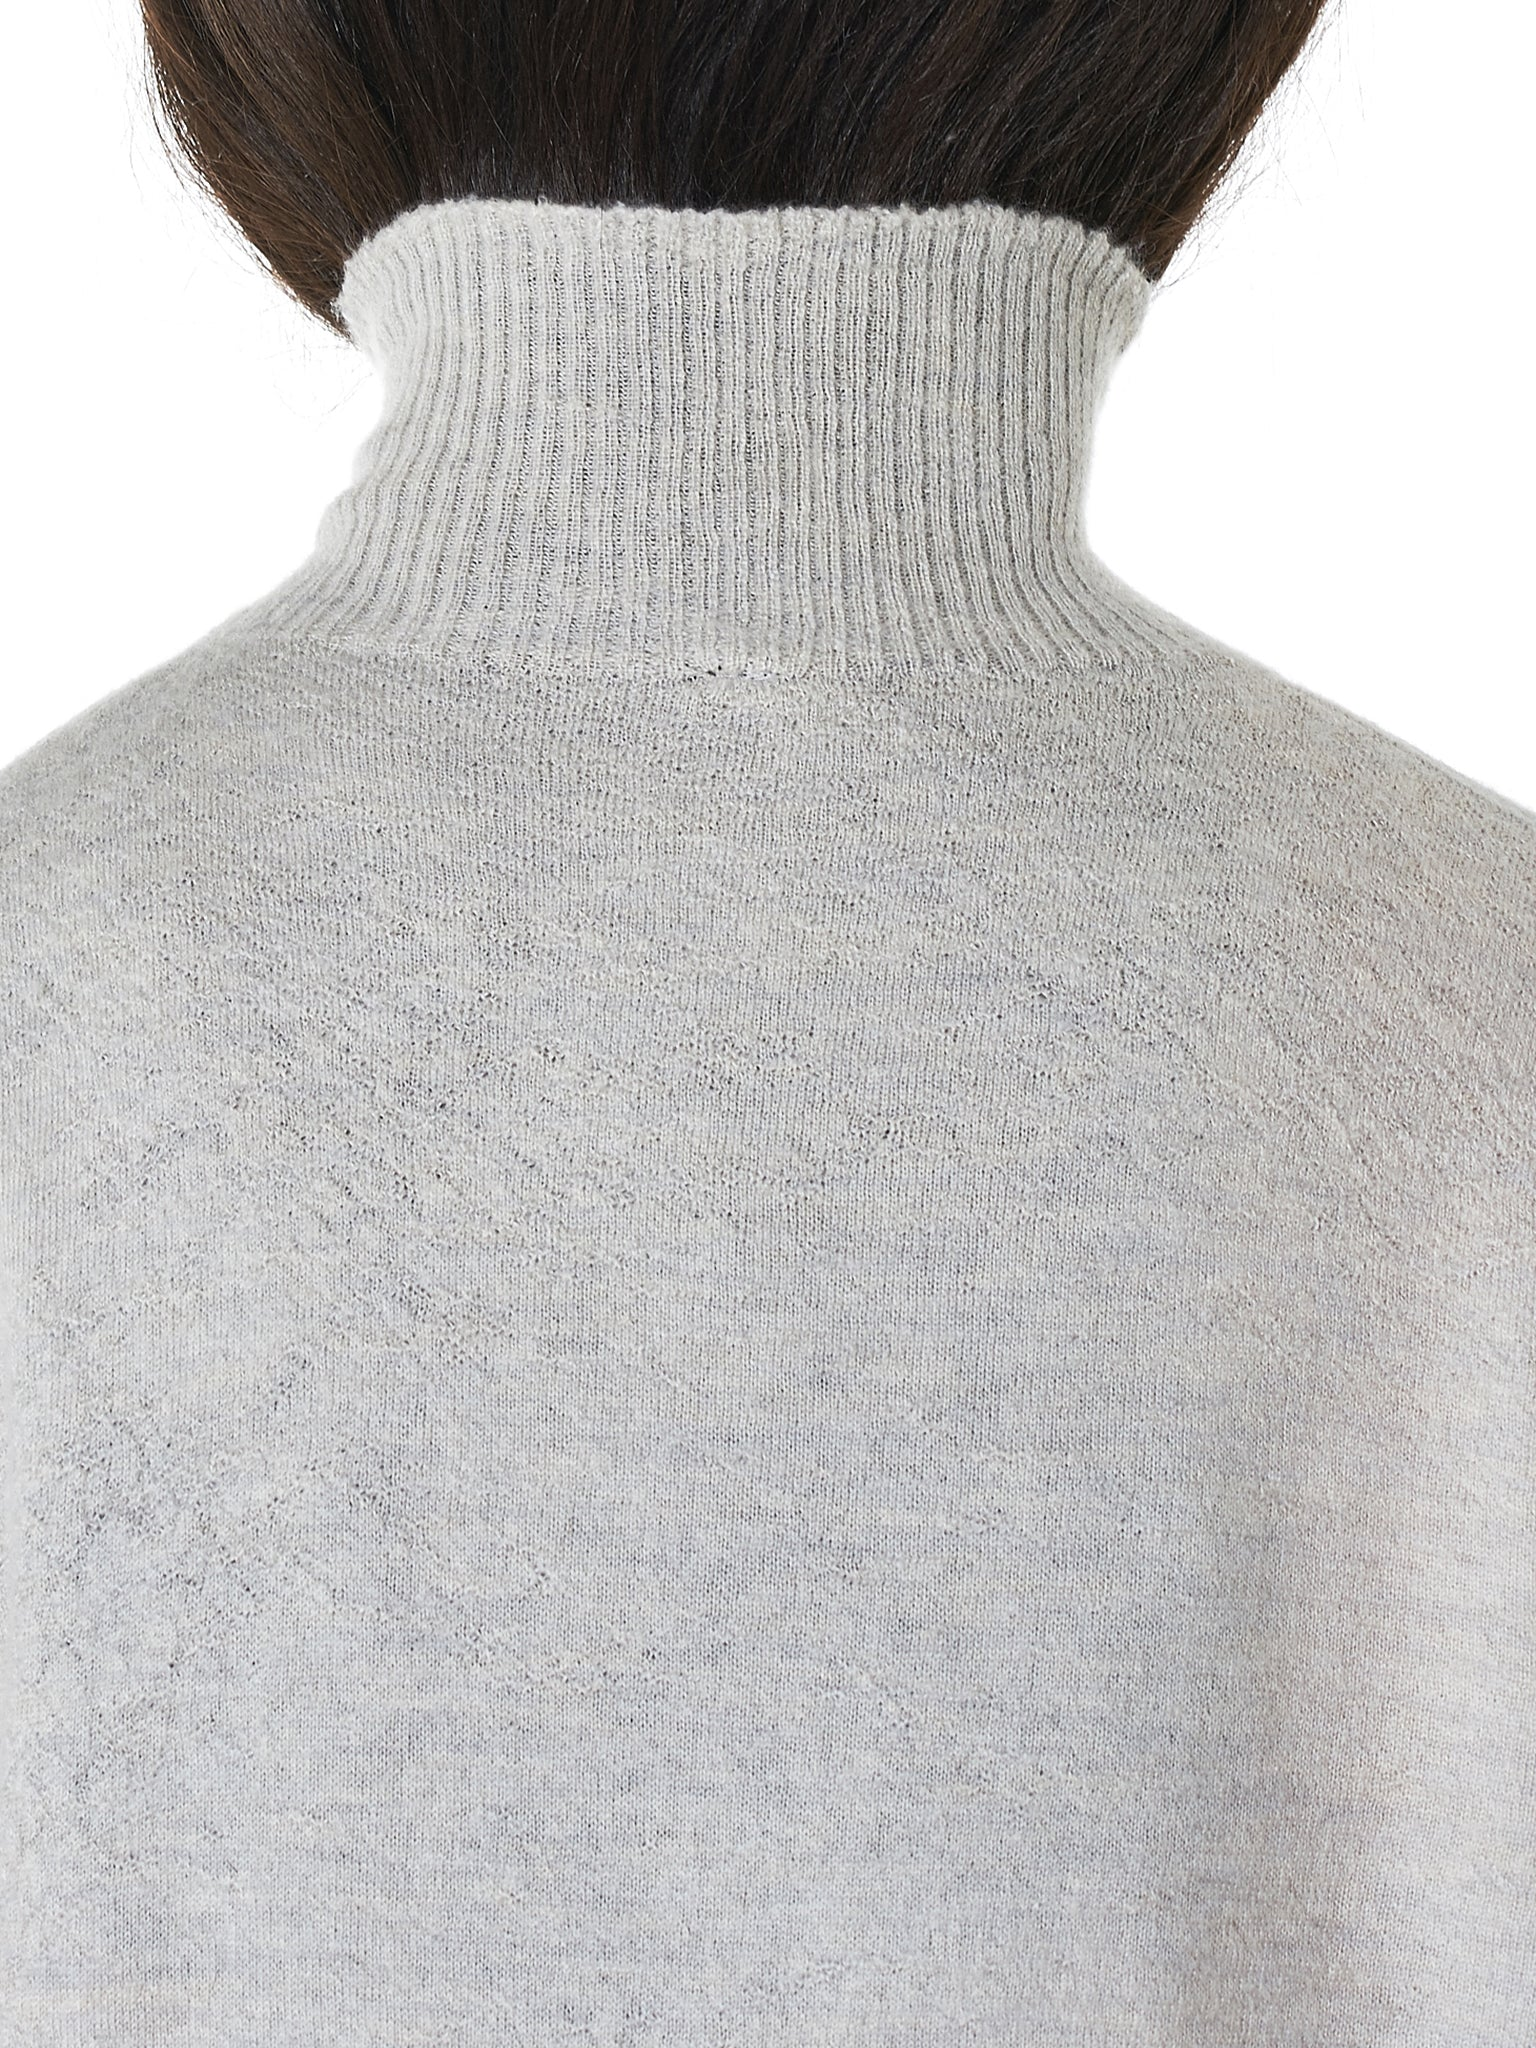 Unravel Turtleneck - Hlorenzo Detail 2